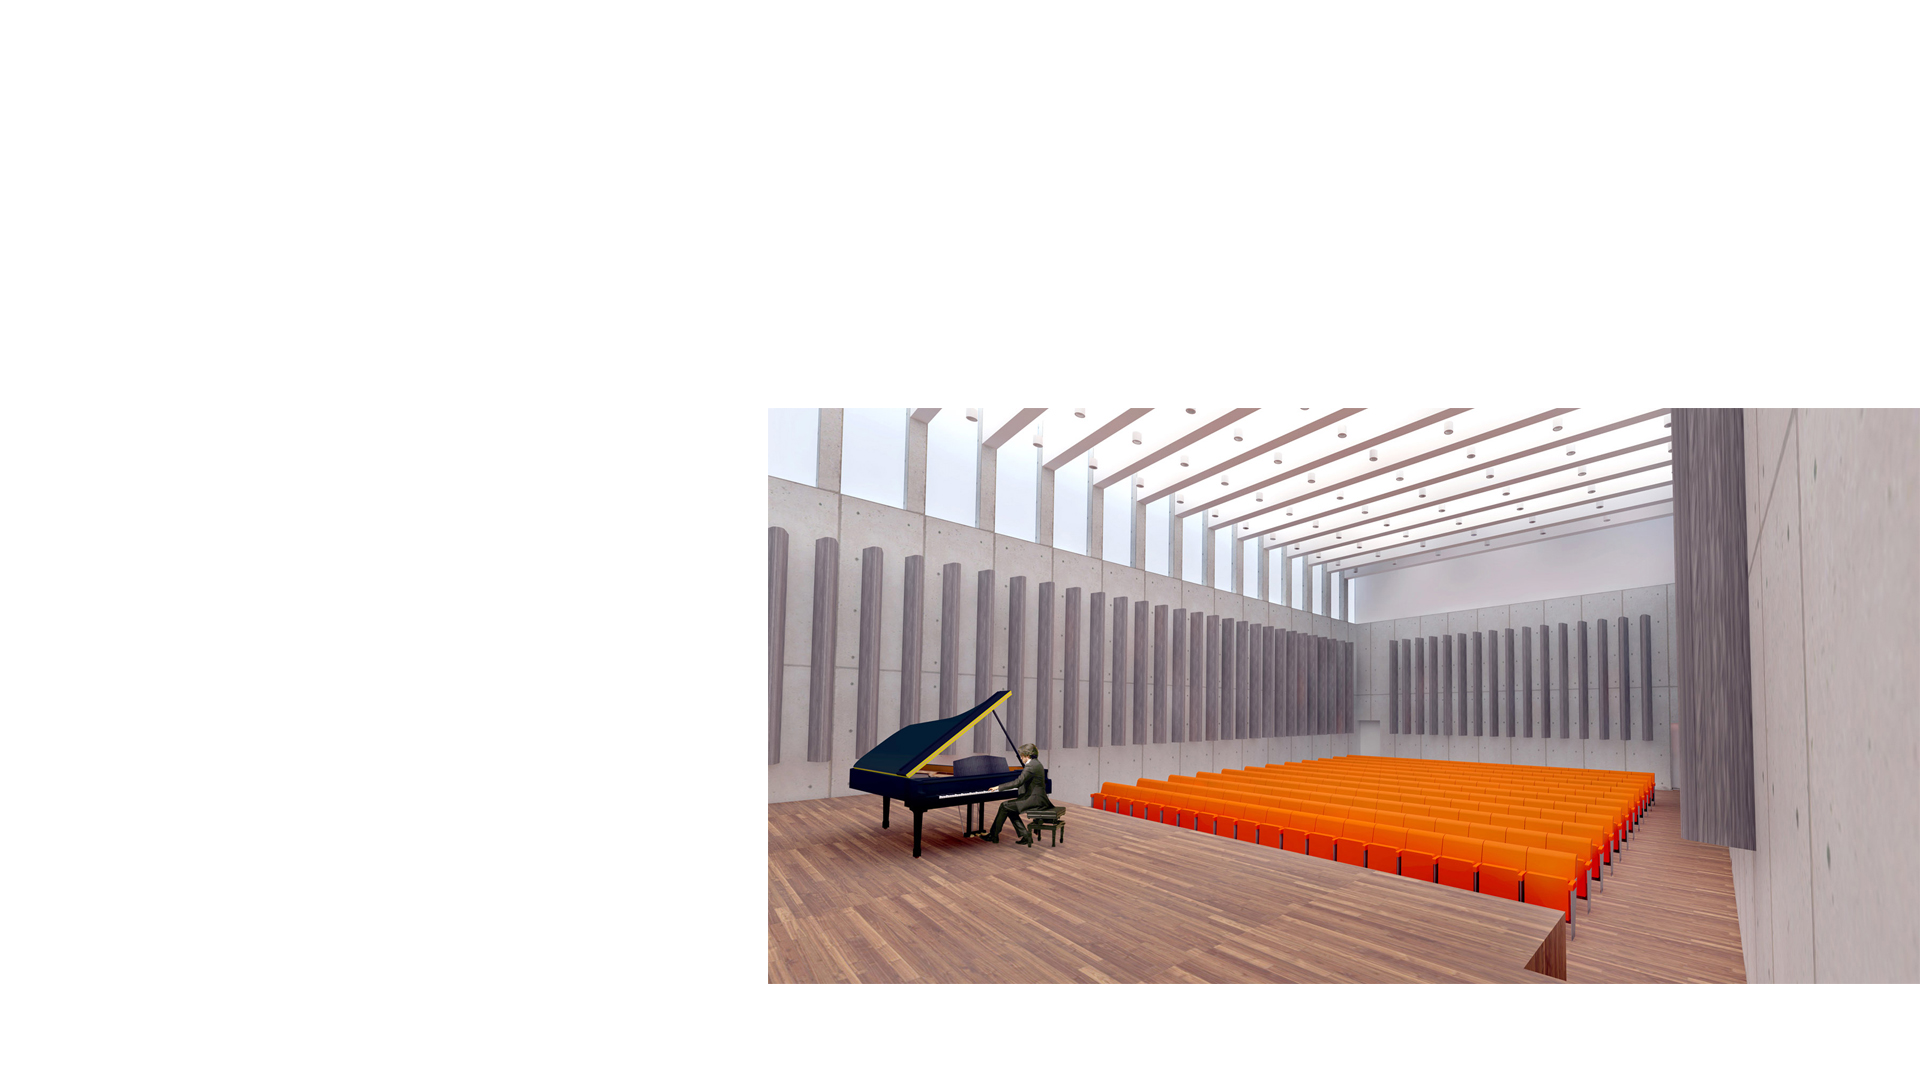 Toplit Recital Room at the Musikzentrum Bochum by Keith Williams Architects